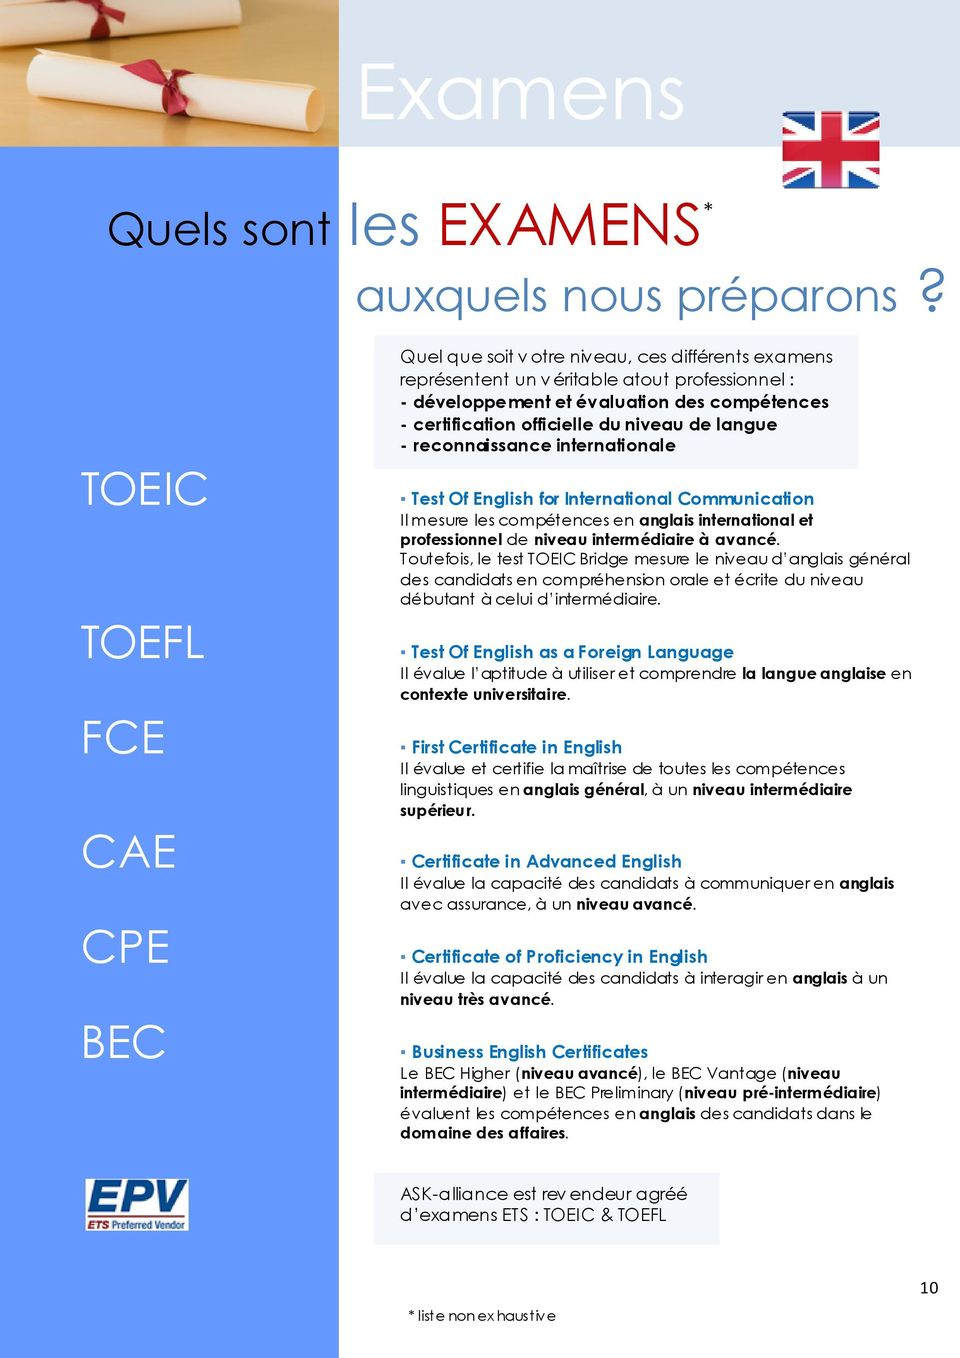 officielle du niveau de langue - reconnaissance internationale Test Of English for International Communication Il mesure les compétences en anglais international et professionnel de niveau